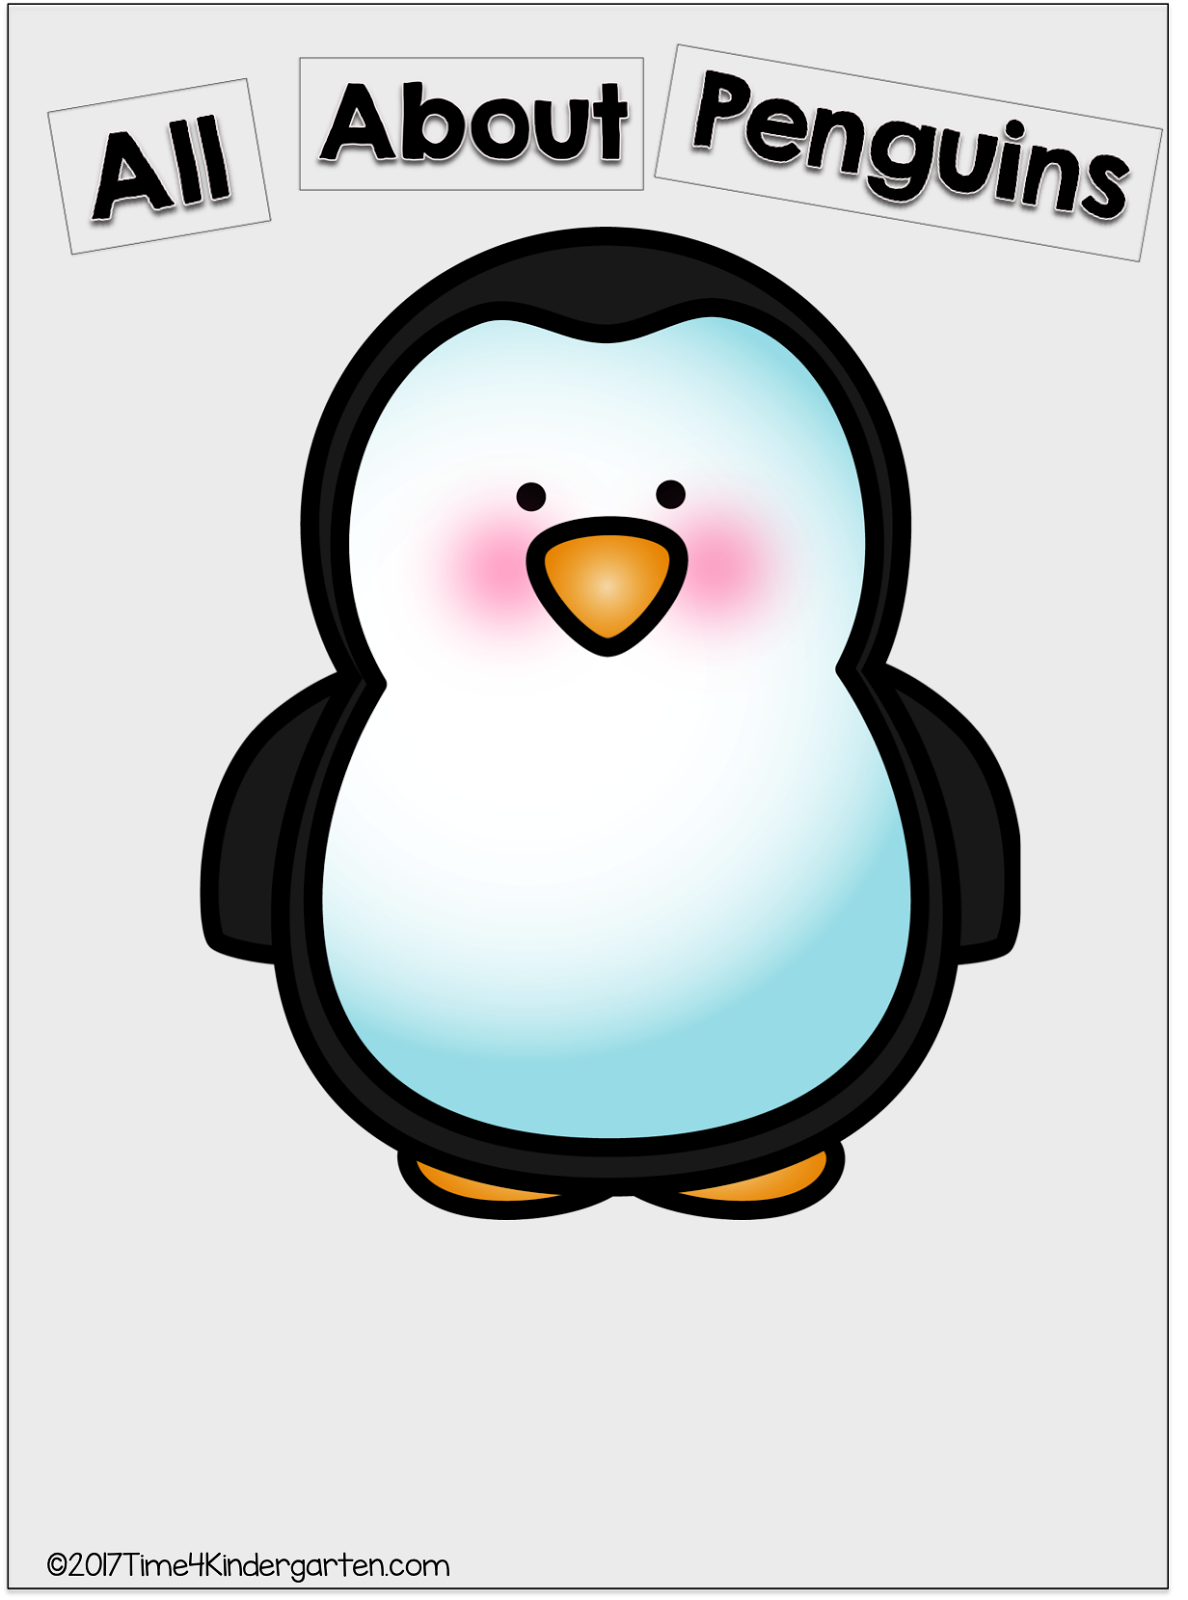 Penguin reading a book clipart image library stock Time 4 Kindergarten: All About Penguins image library stock